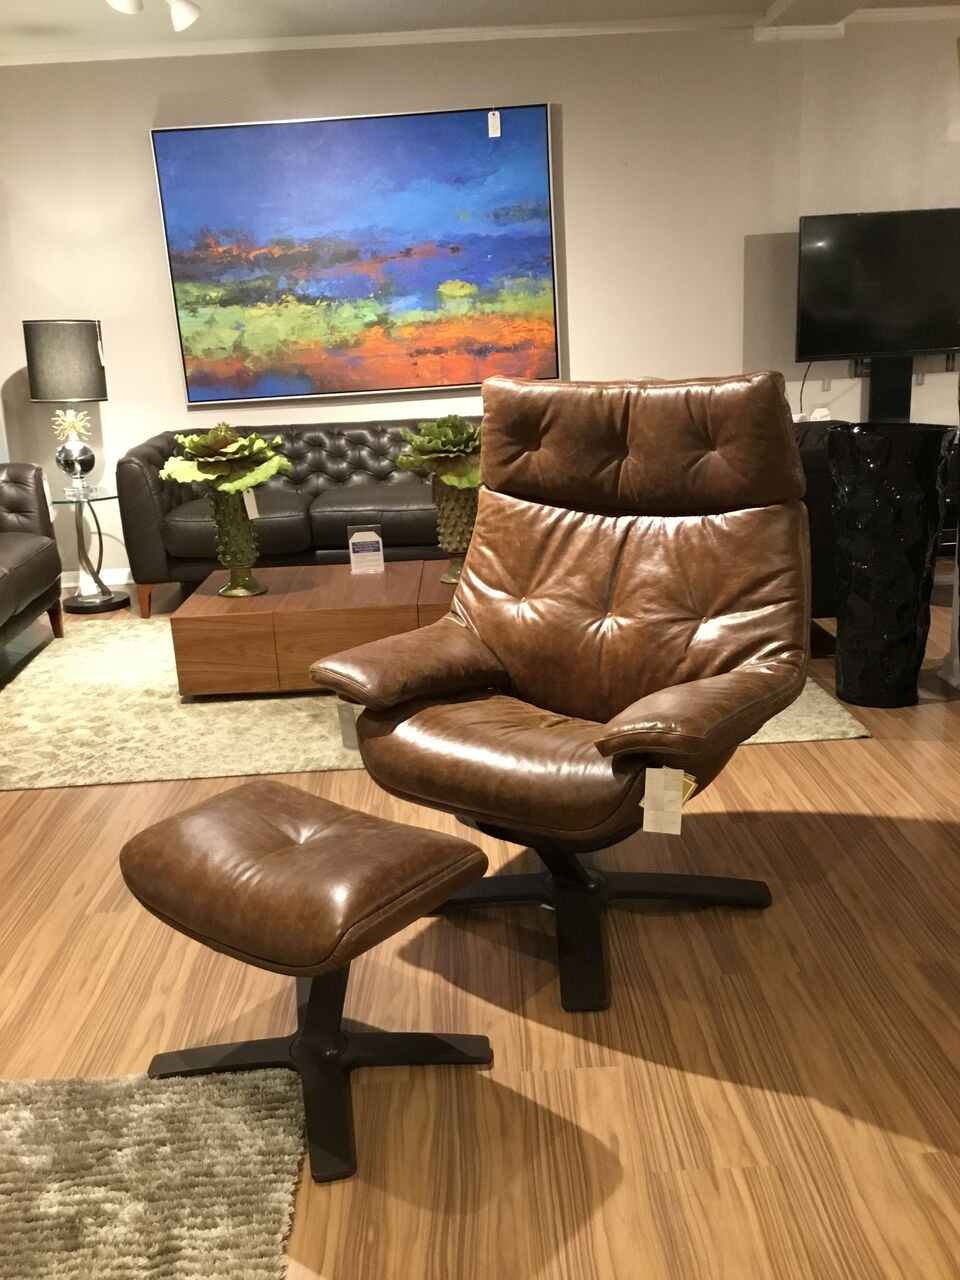 Reflections Furniture Outlet Natuzzi Revive Club King Recliner Set 50% Off